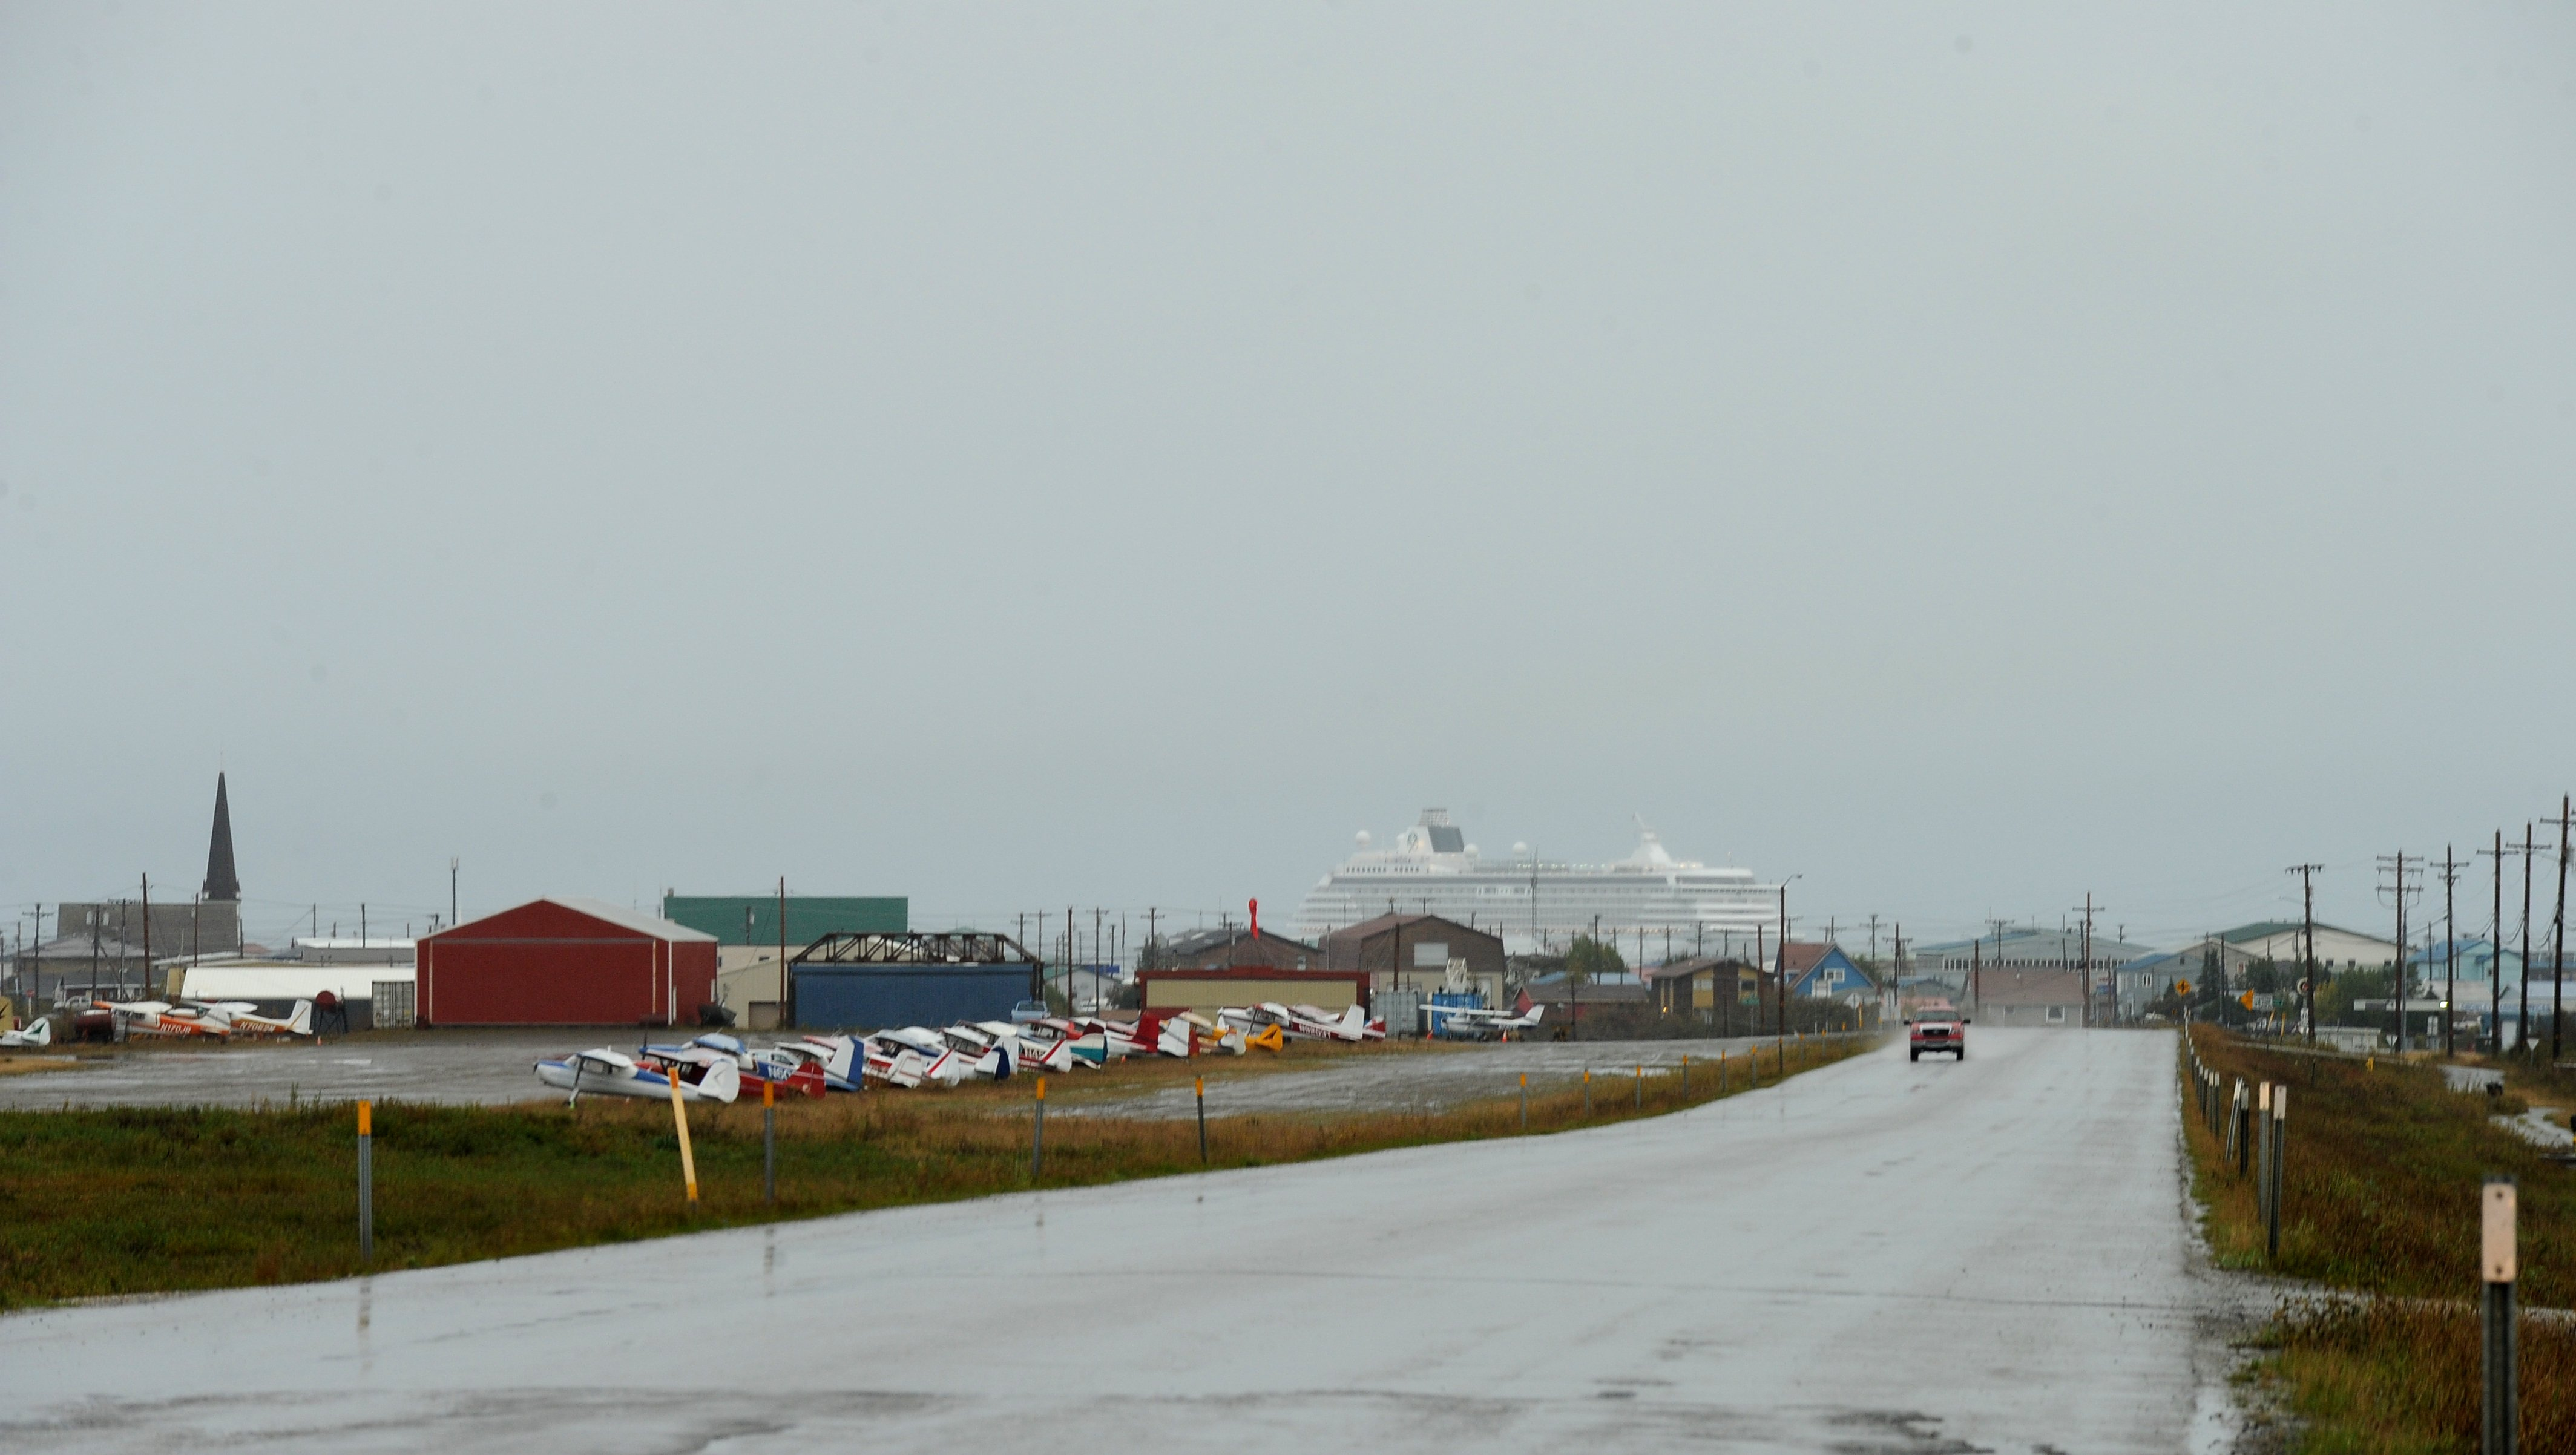 The Crystal Serenity cruise ship stops in Nome, AK on Sunday, August 21, 2016. The cruise ship is on its way across the Northwest Passage, the largest passenger ship to attempt the crossing. (Bob Hallinen / Alaska Dispatch News)